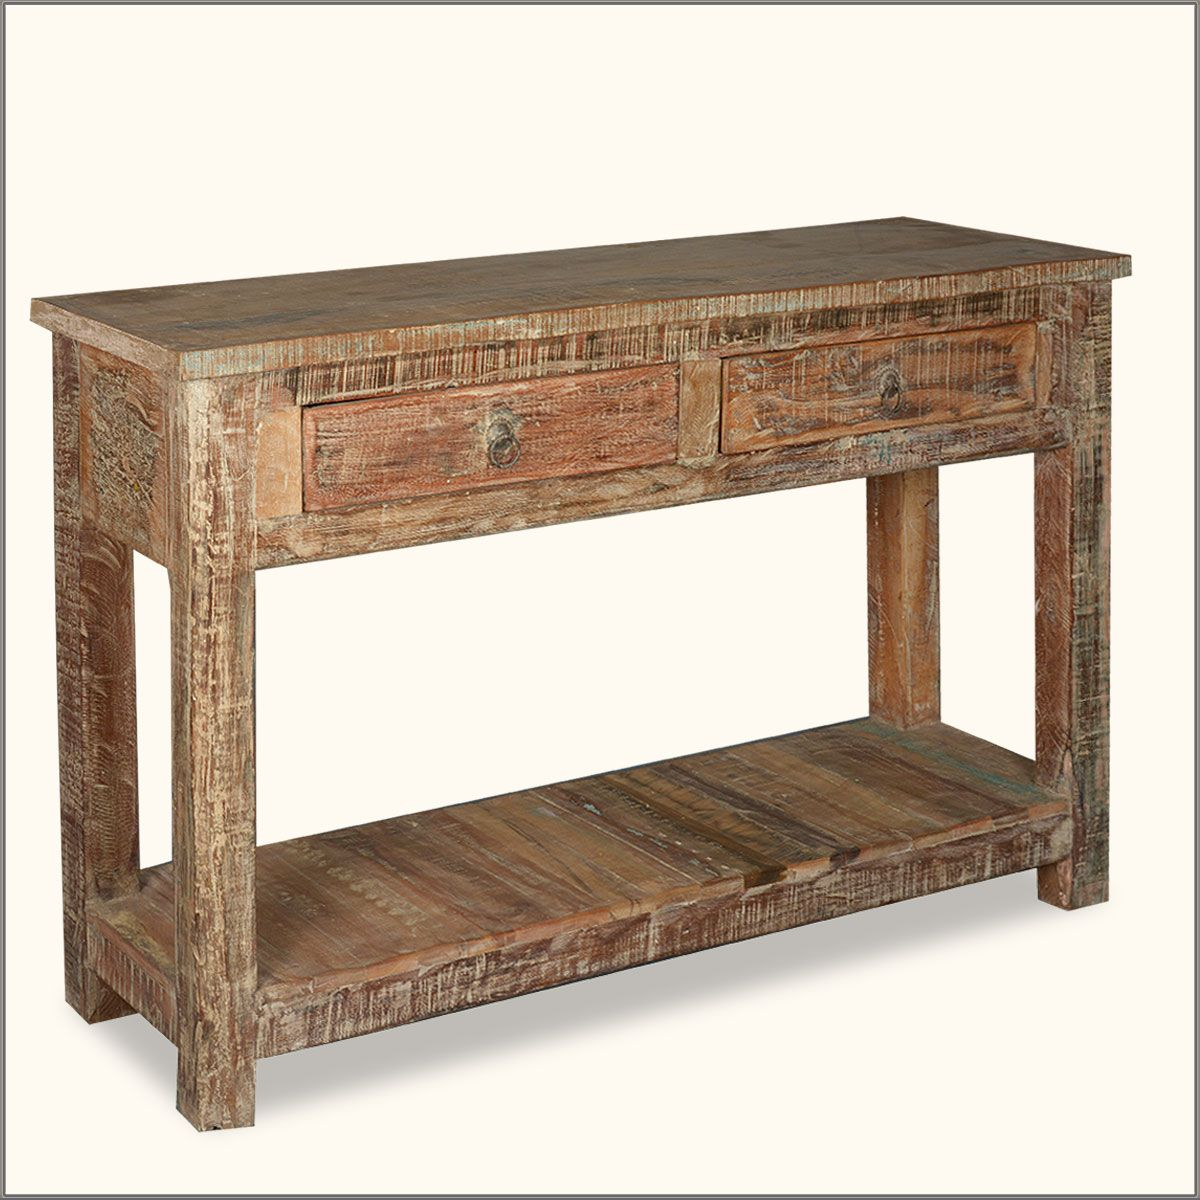 Rustic Reclaimed Wood Naturally Distressed Hall Console Table Rustic Reclaimed Wood Reclaimed Wood Furniture Wood Sofa Table